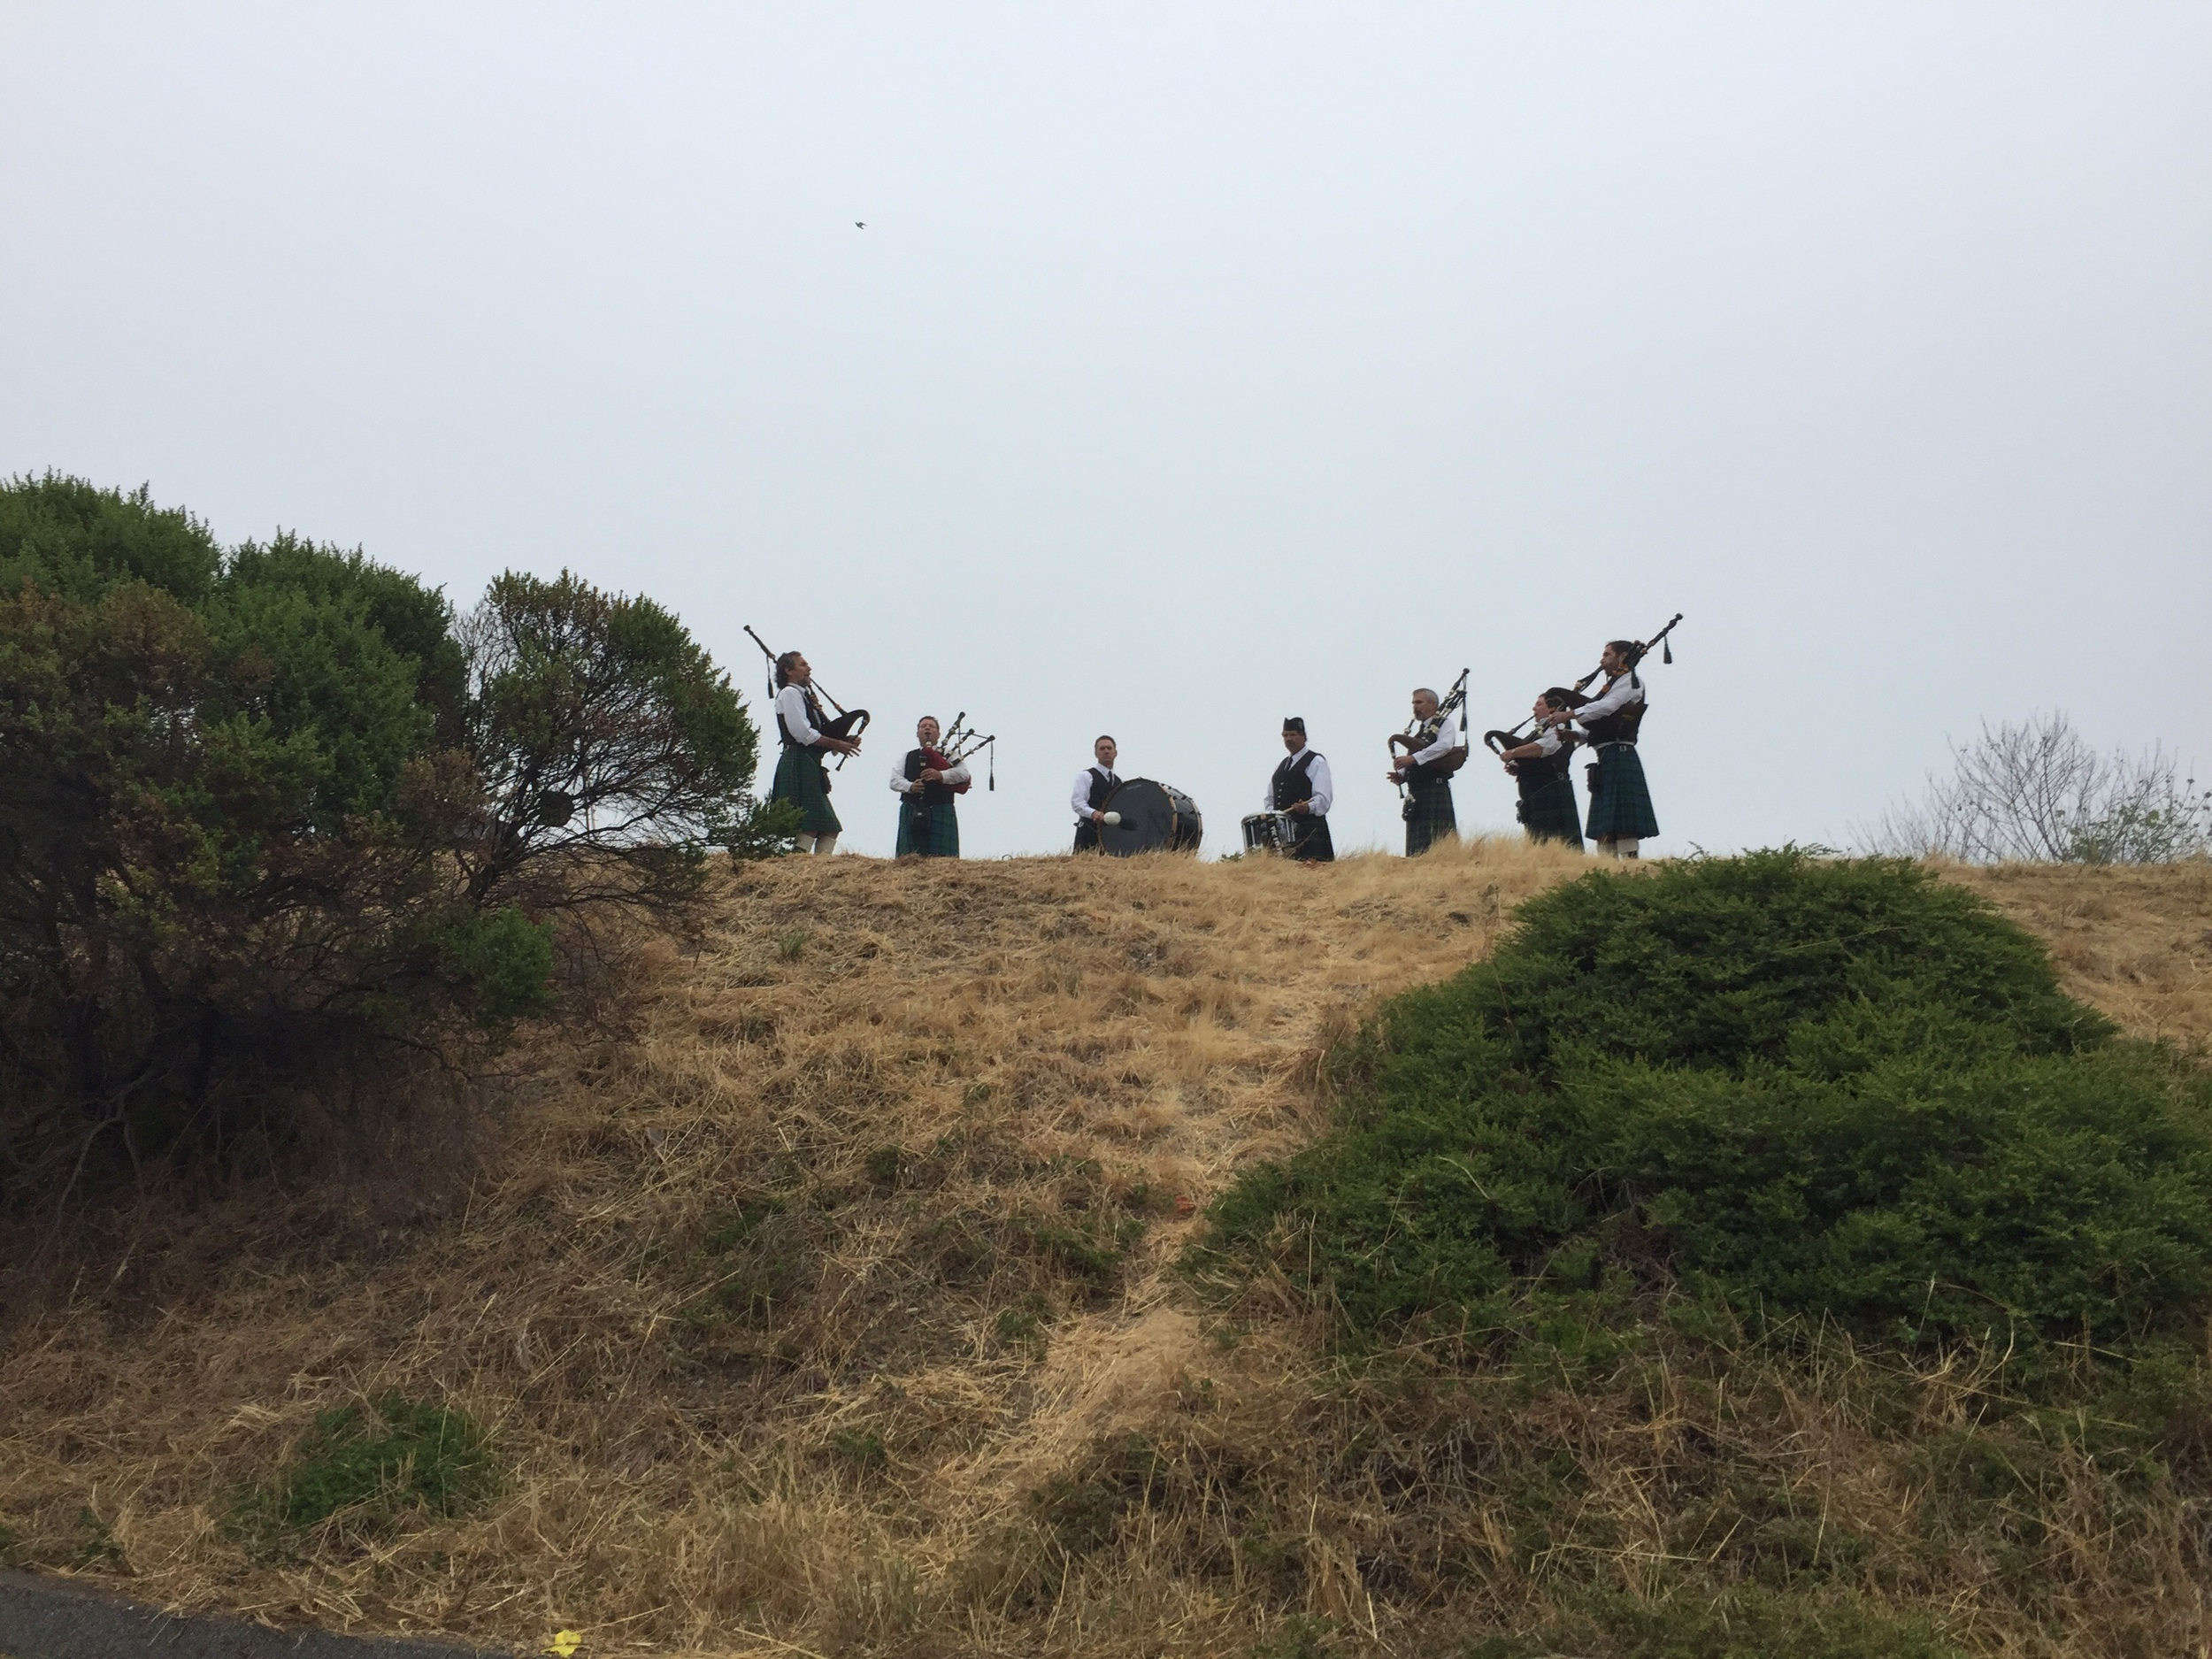 Mile 1 - bagpipers